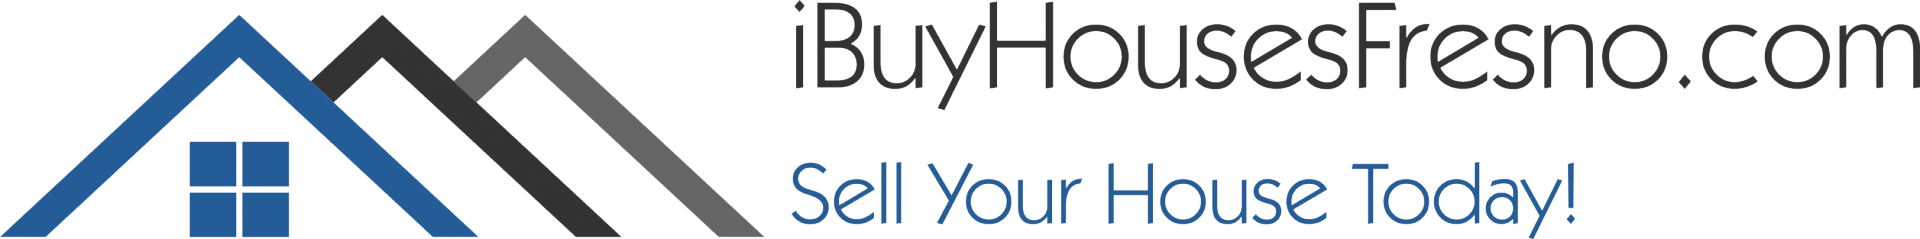 Sell Your House In Fresno logo